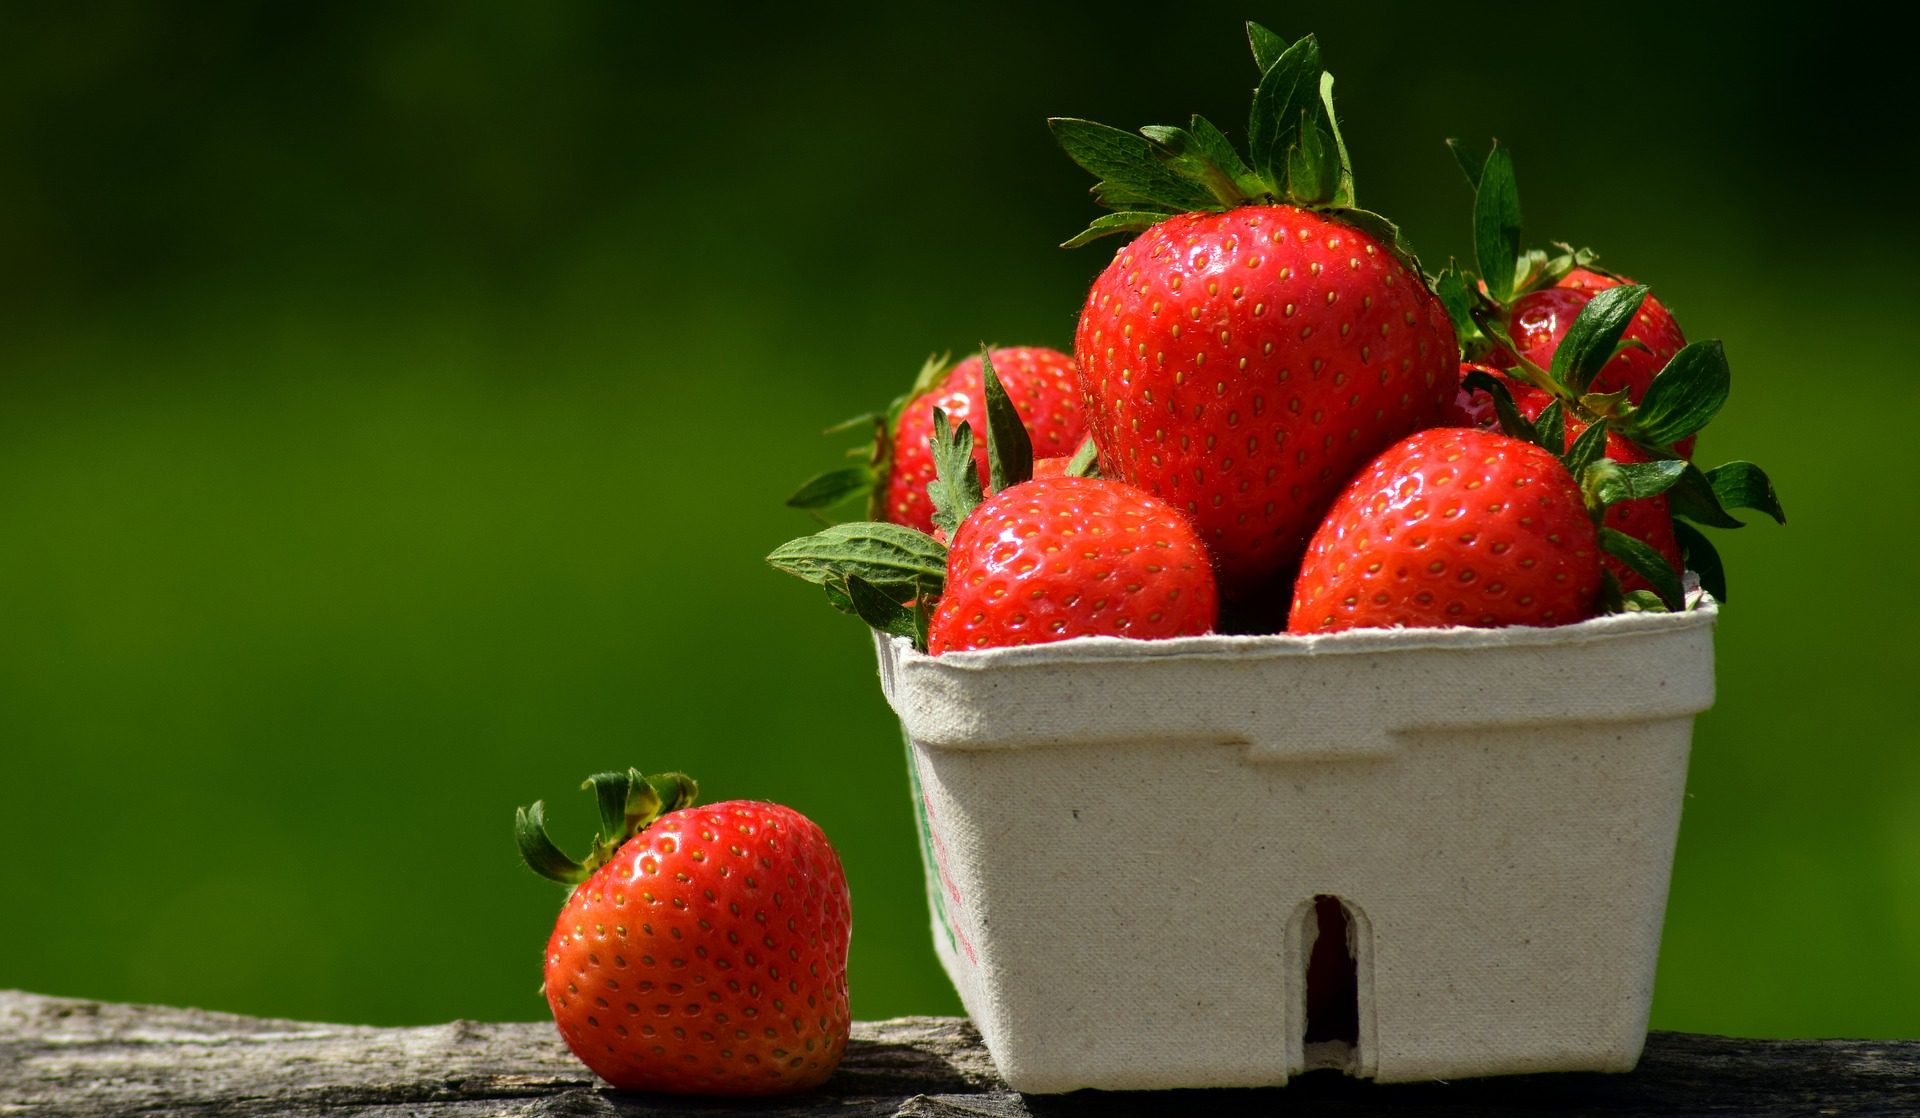 Strawberries are the happiest fruit